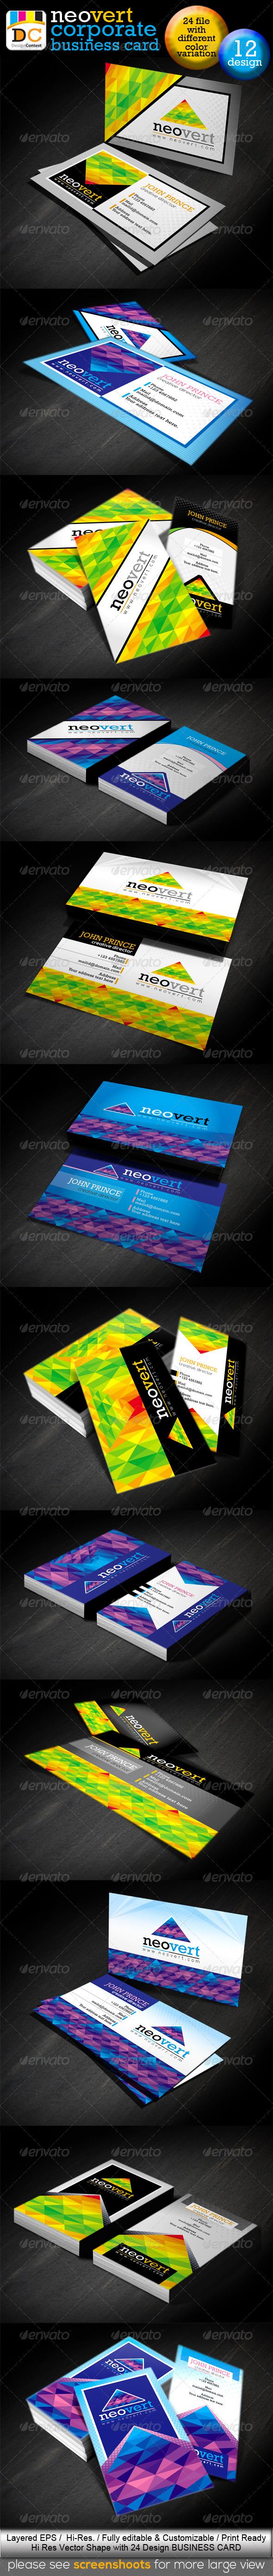 GraphicRiver NeoVert Corporate Creative Business Cards 3906852